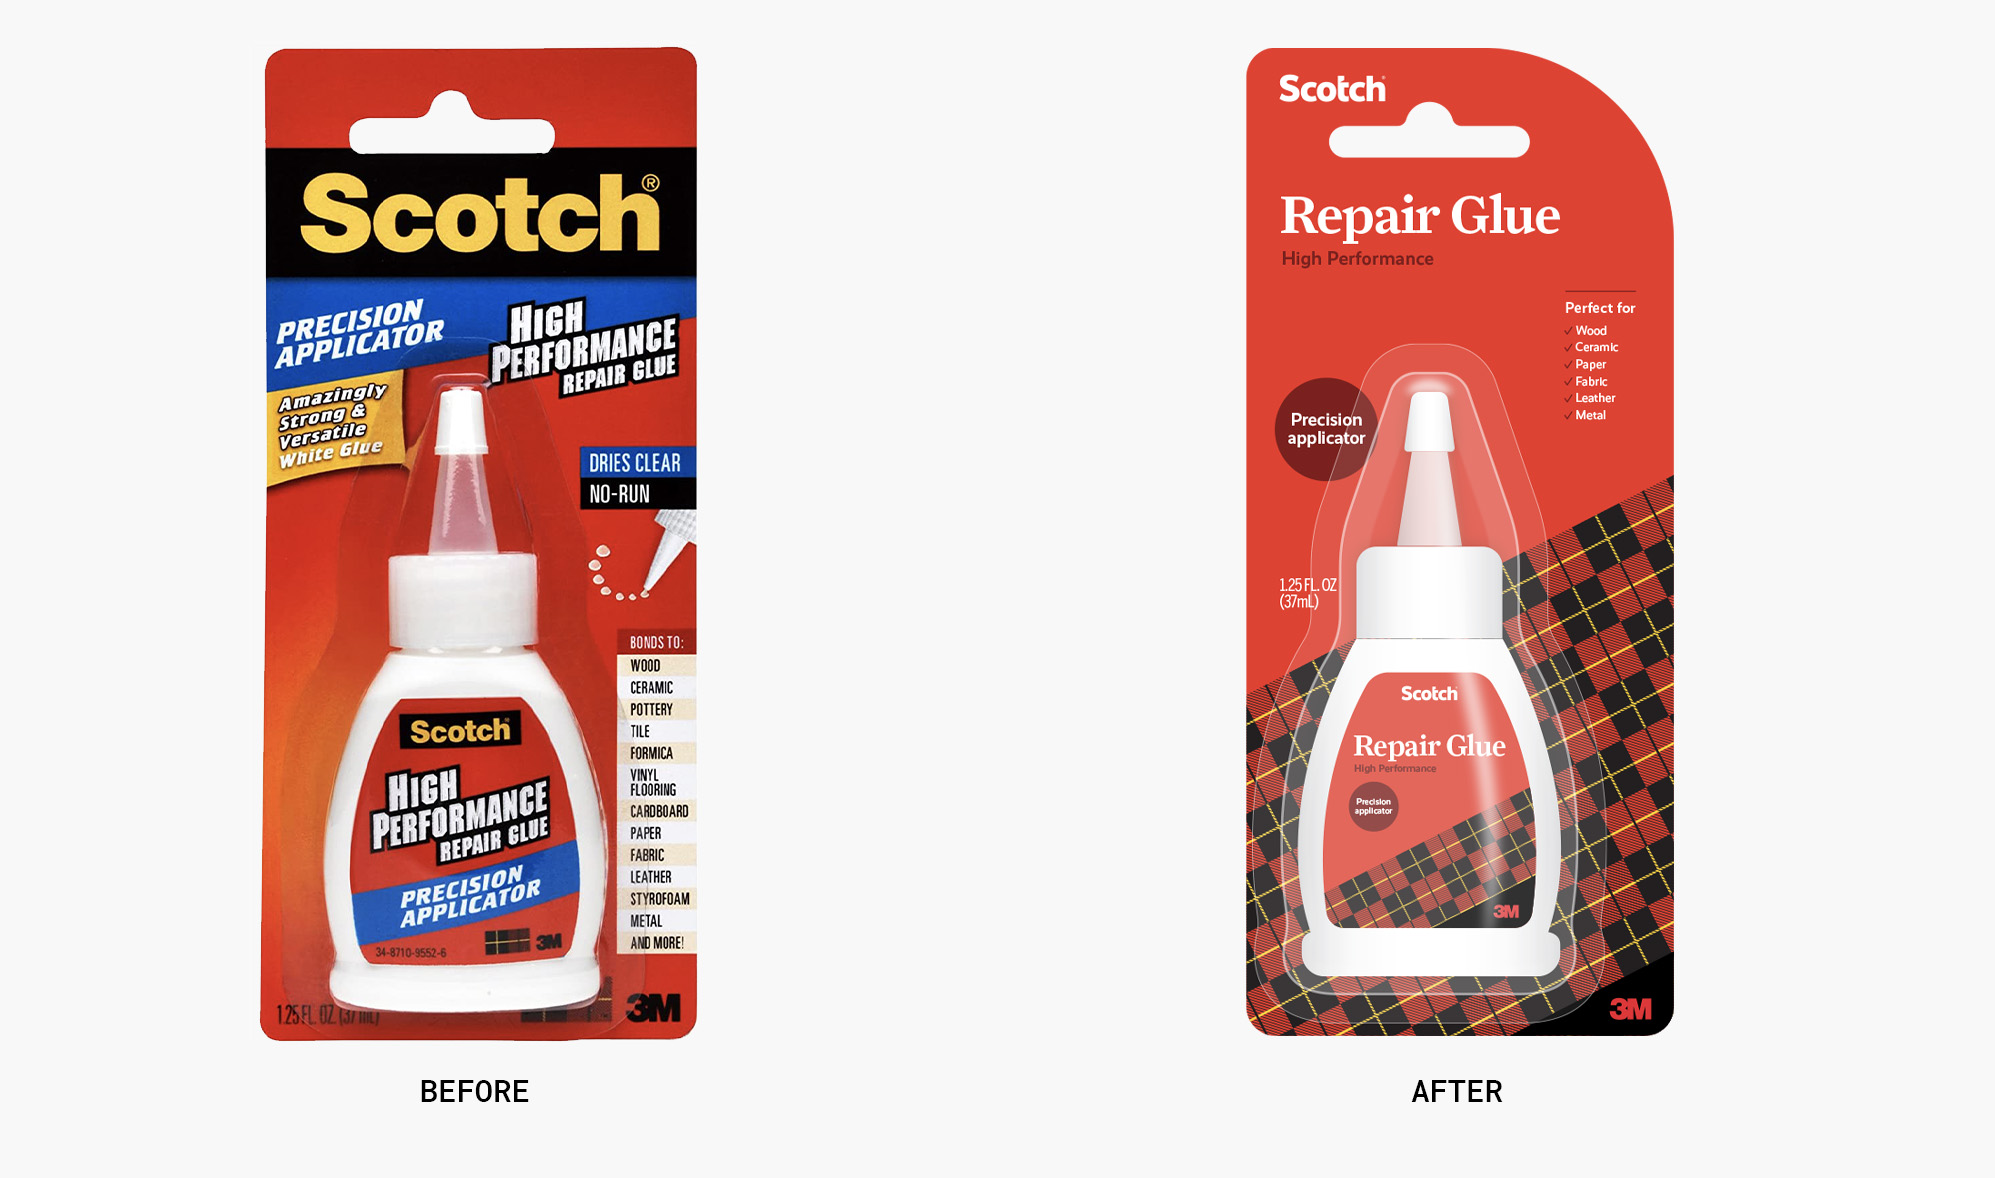 Before and after of Scotch's glue packaging